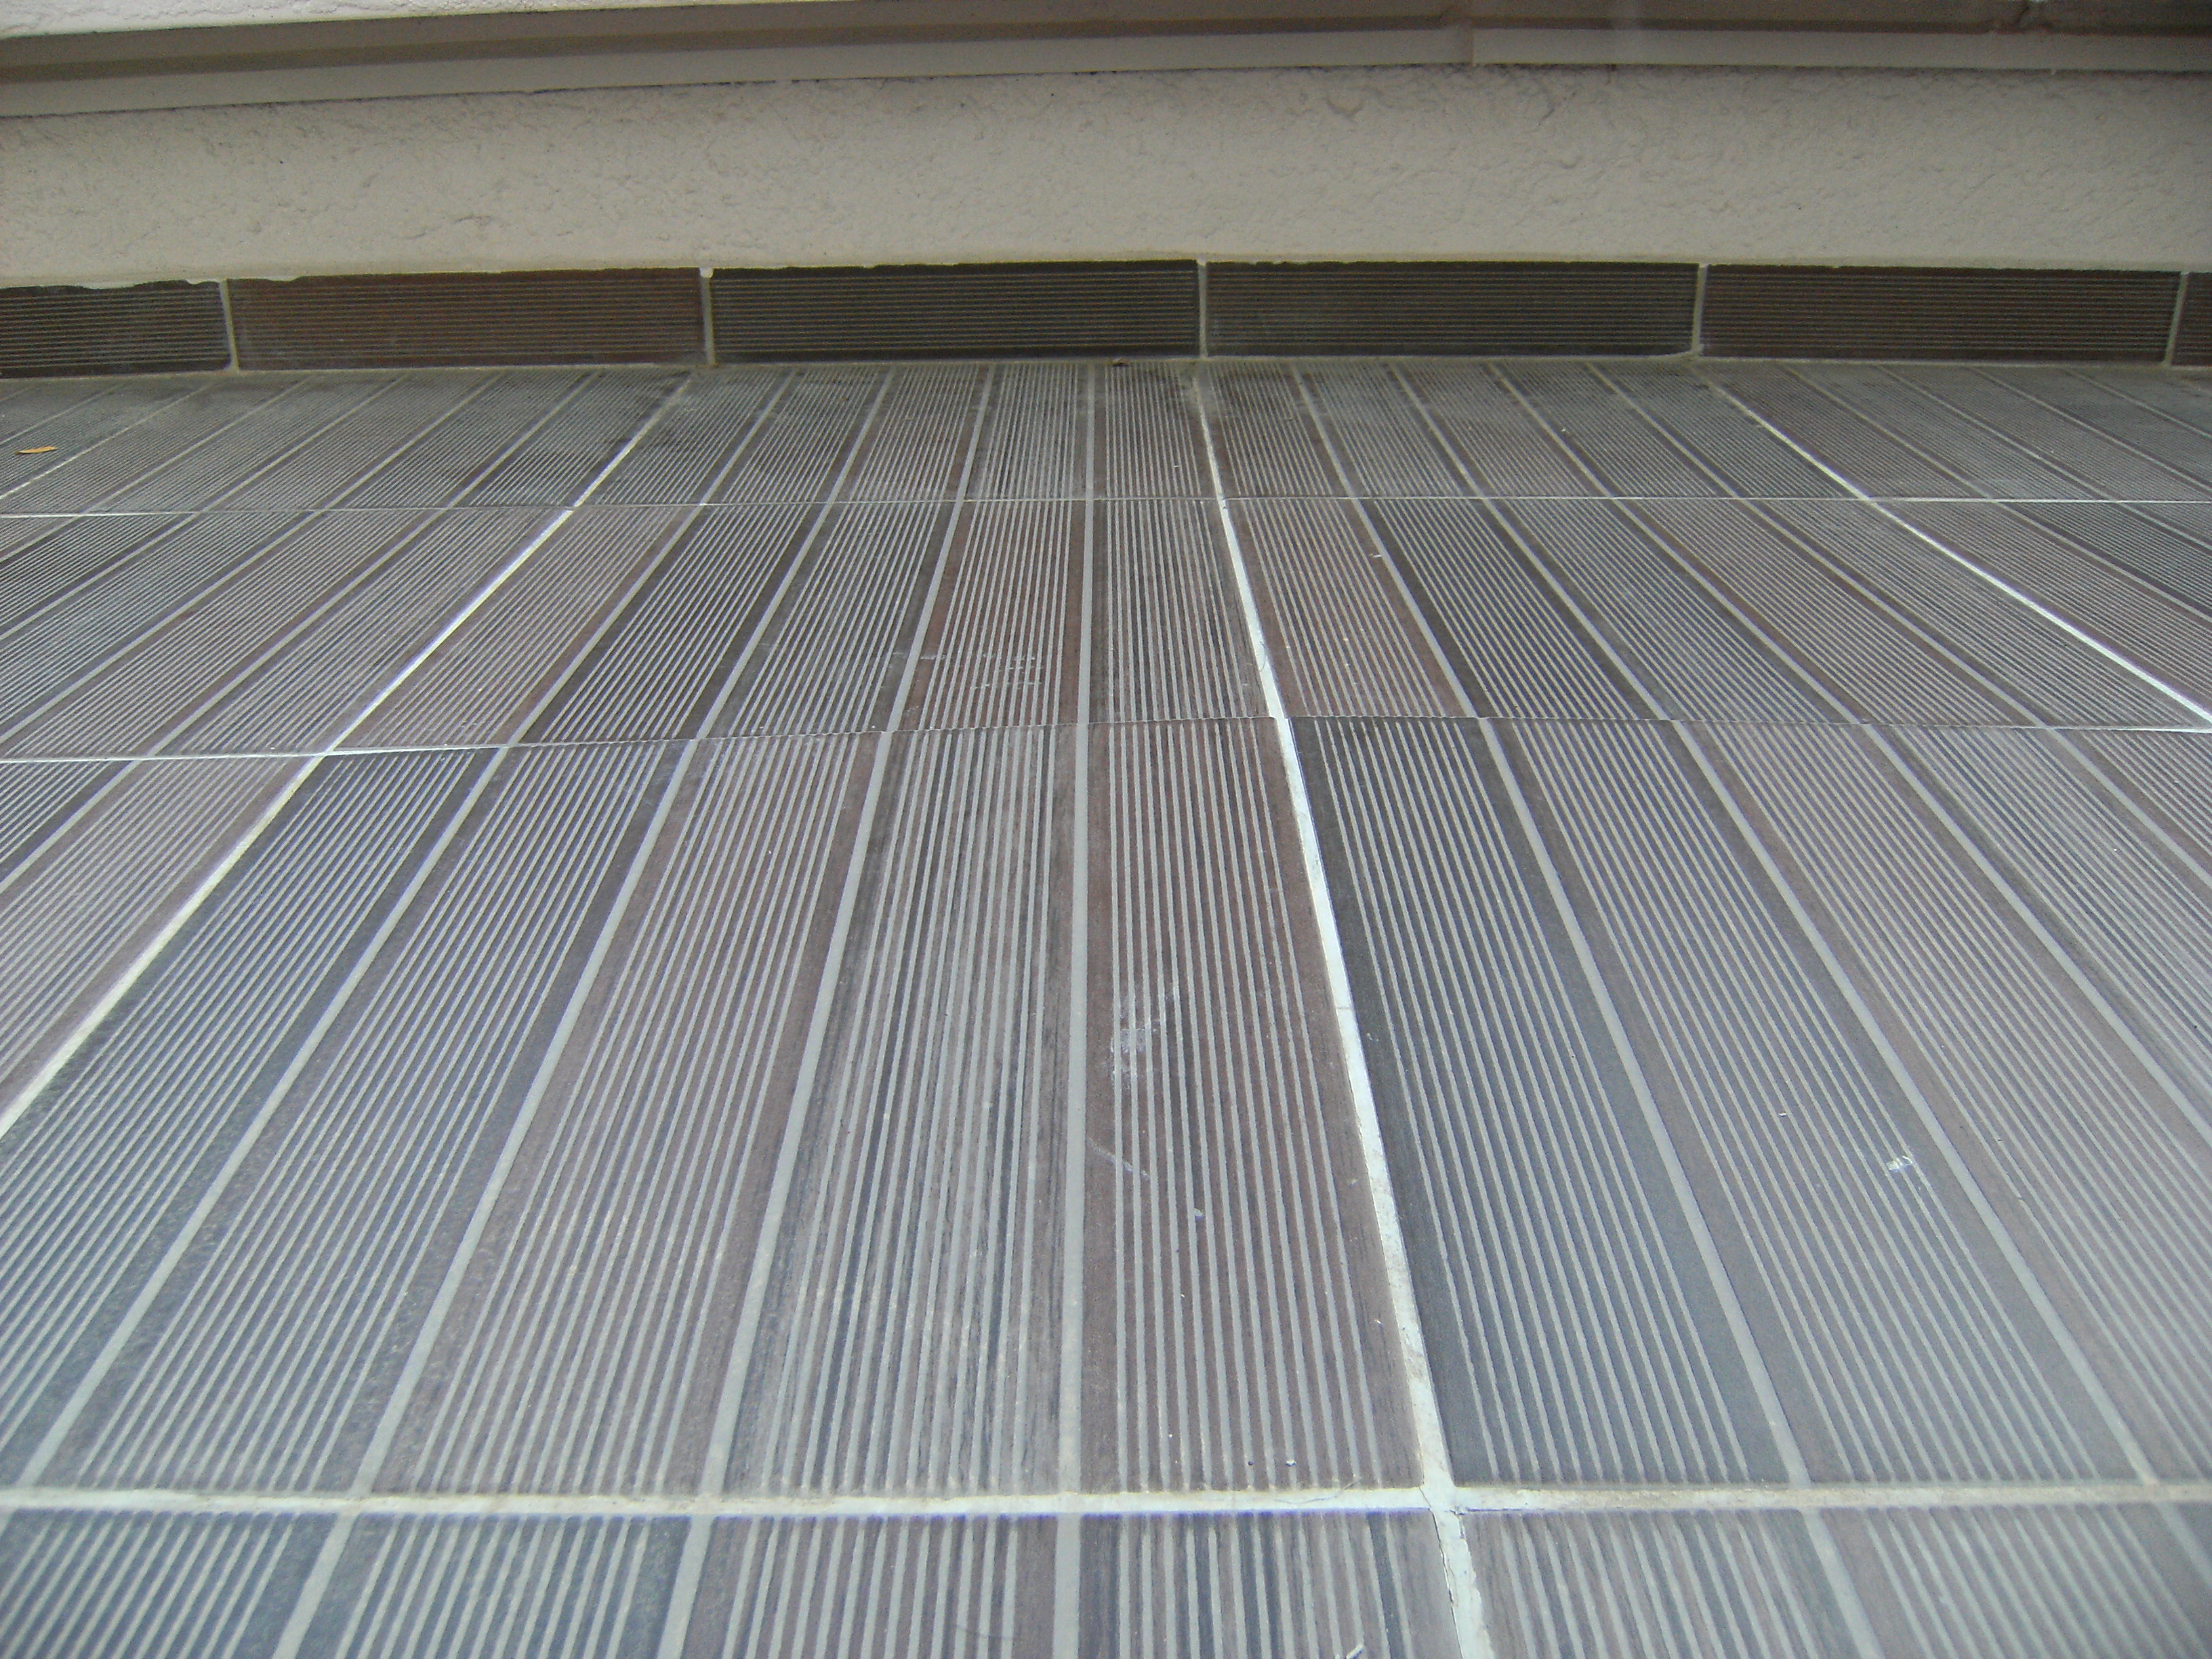 Carrelage de terrasse qui se soul ve for Faire joint de carrelage exterieur